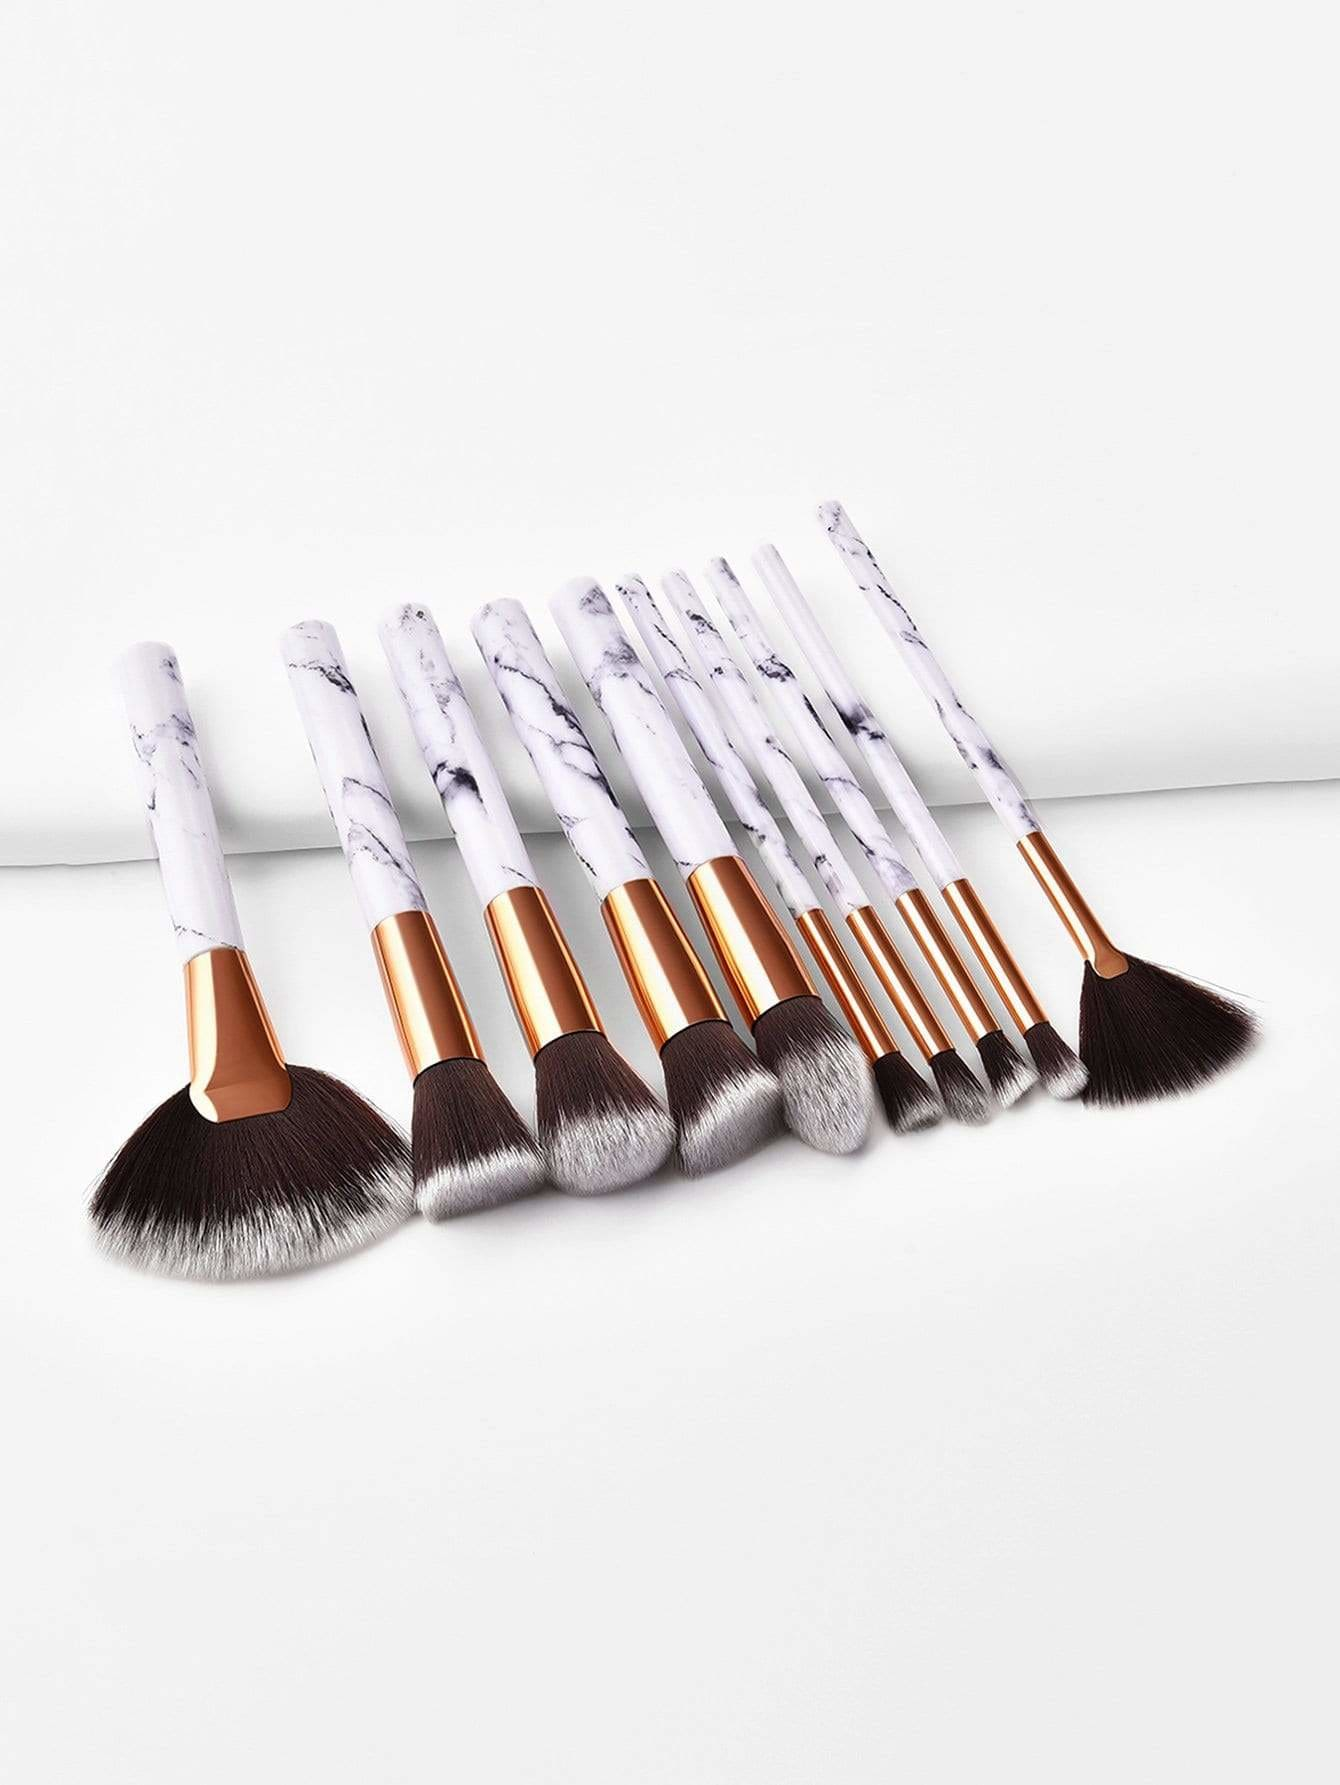 Marble Handle Makeup Brush 10Pcs - Makeup Brushes